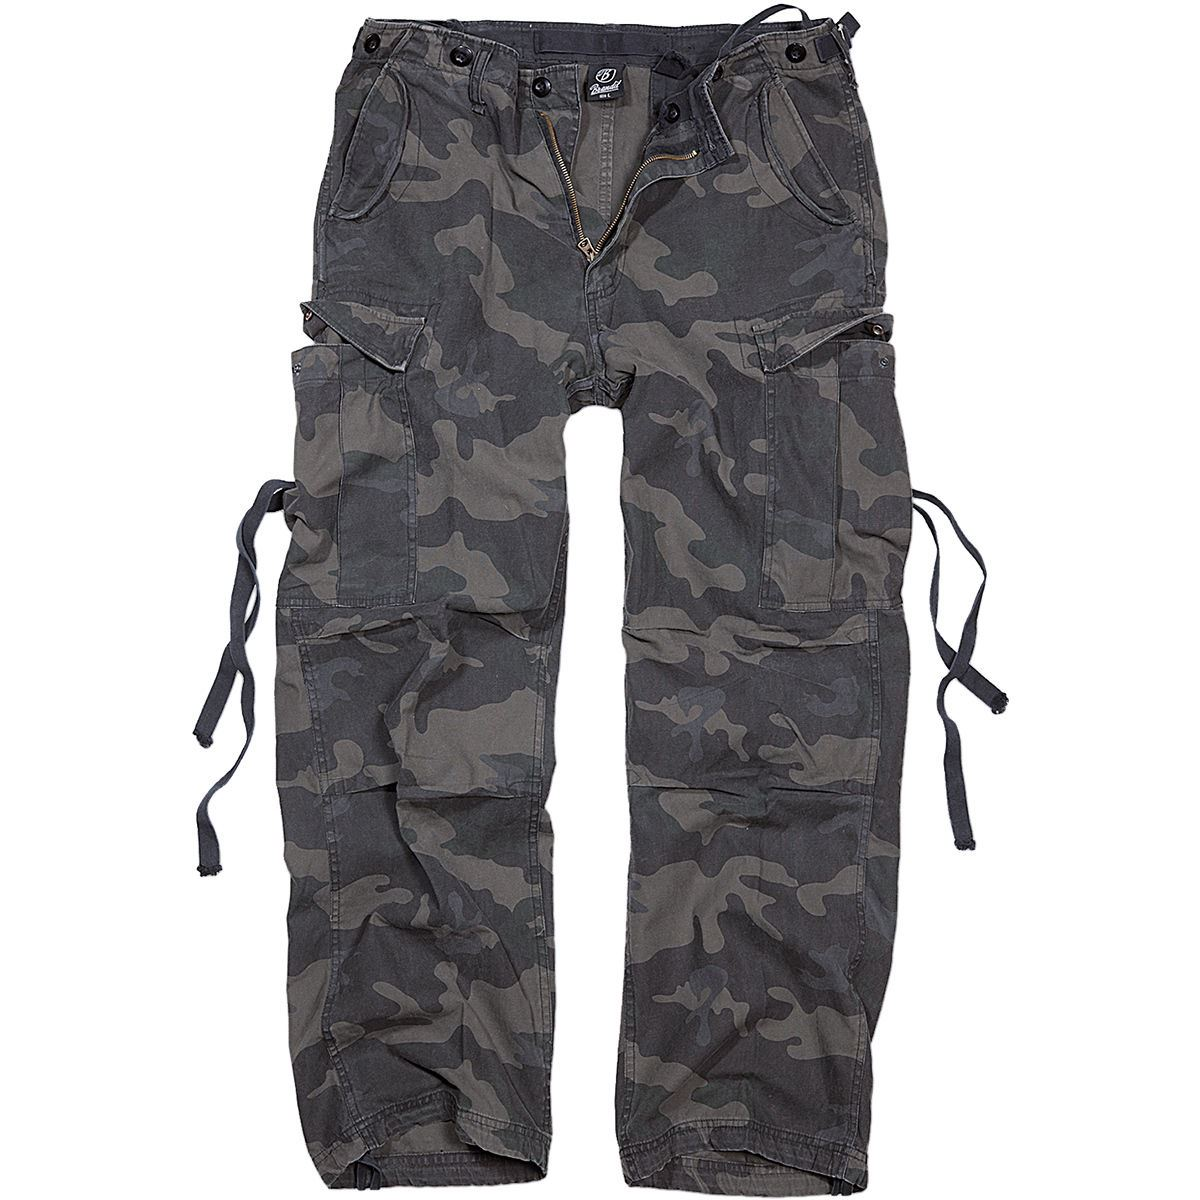 BRANDIT-M65-TROUSERS-MILITARY-VINTAGE-COMBAT-PAINTBALL-AIRSOFT-